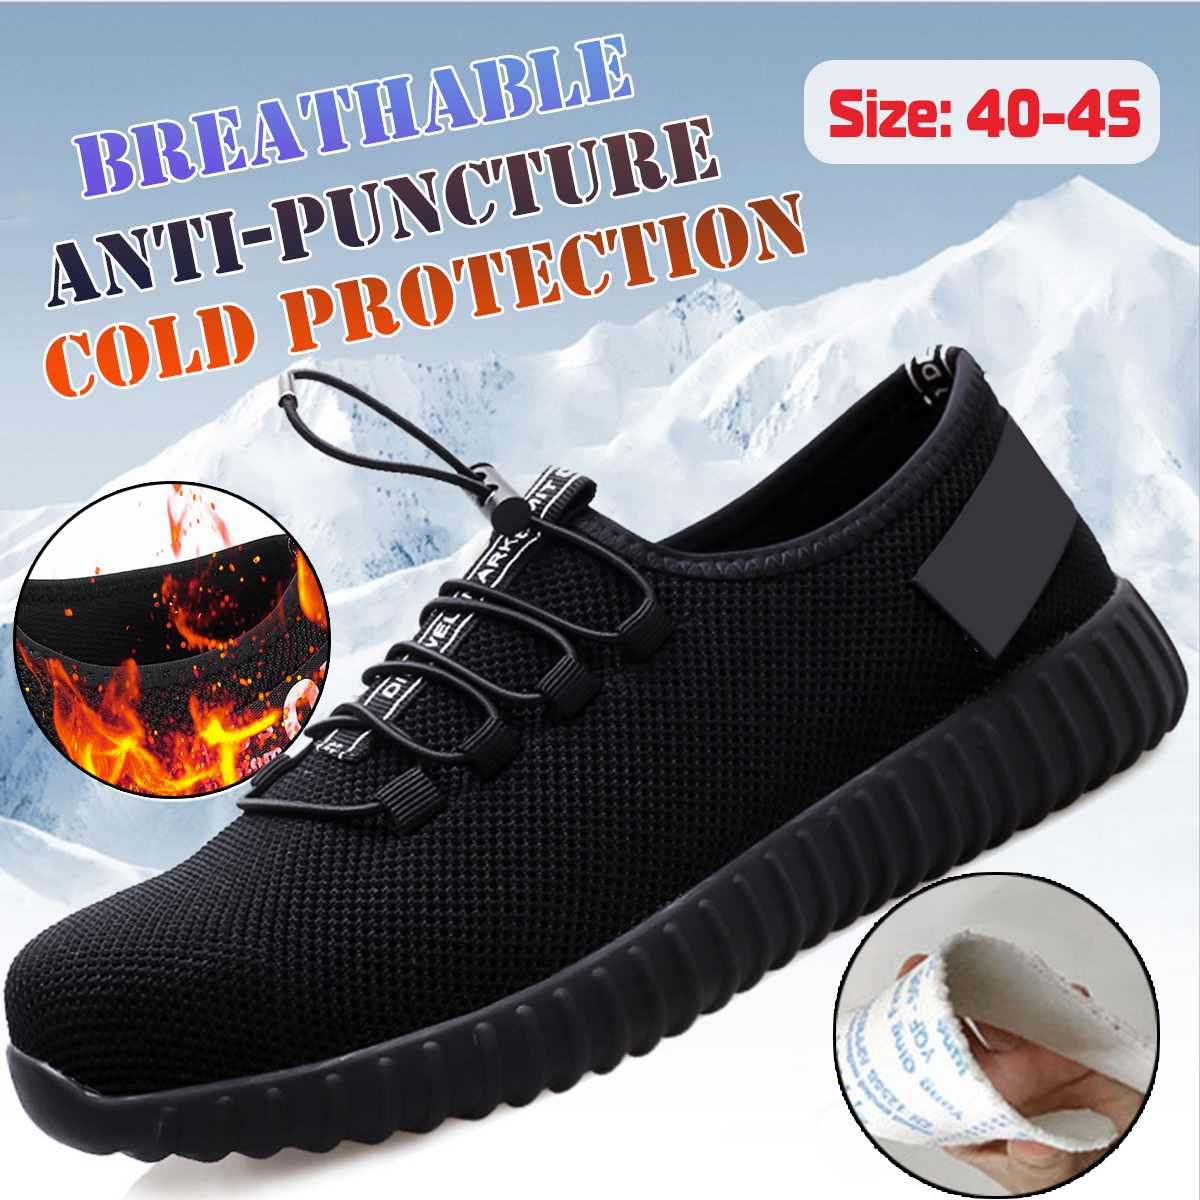 Outdoor Breathable Steel Toe Cap Work Safety Shoes Men Anti-slip Deodorant Steel Puncture Proof Construction Safety Boots Shoes